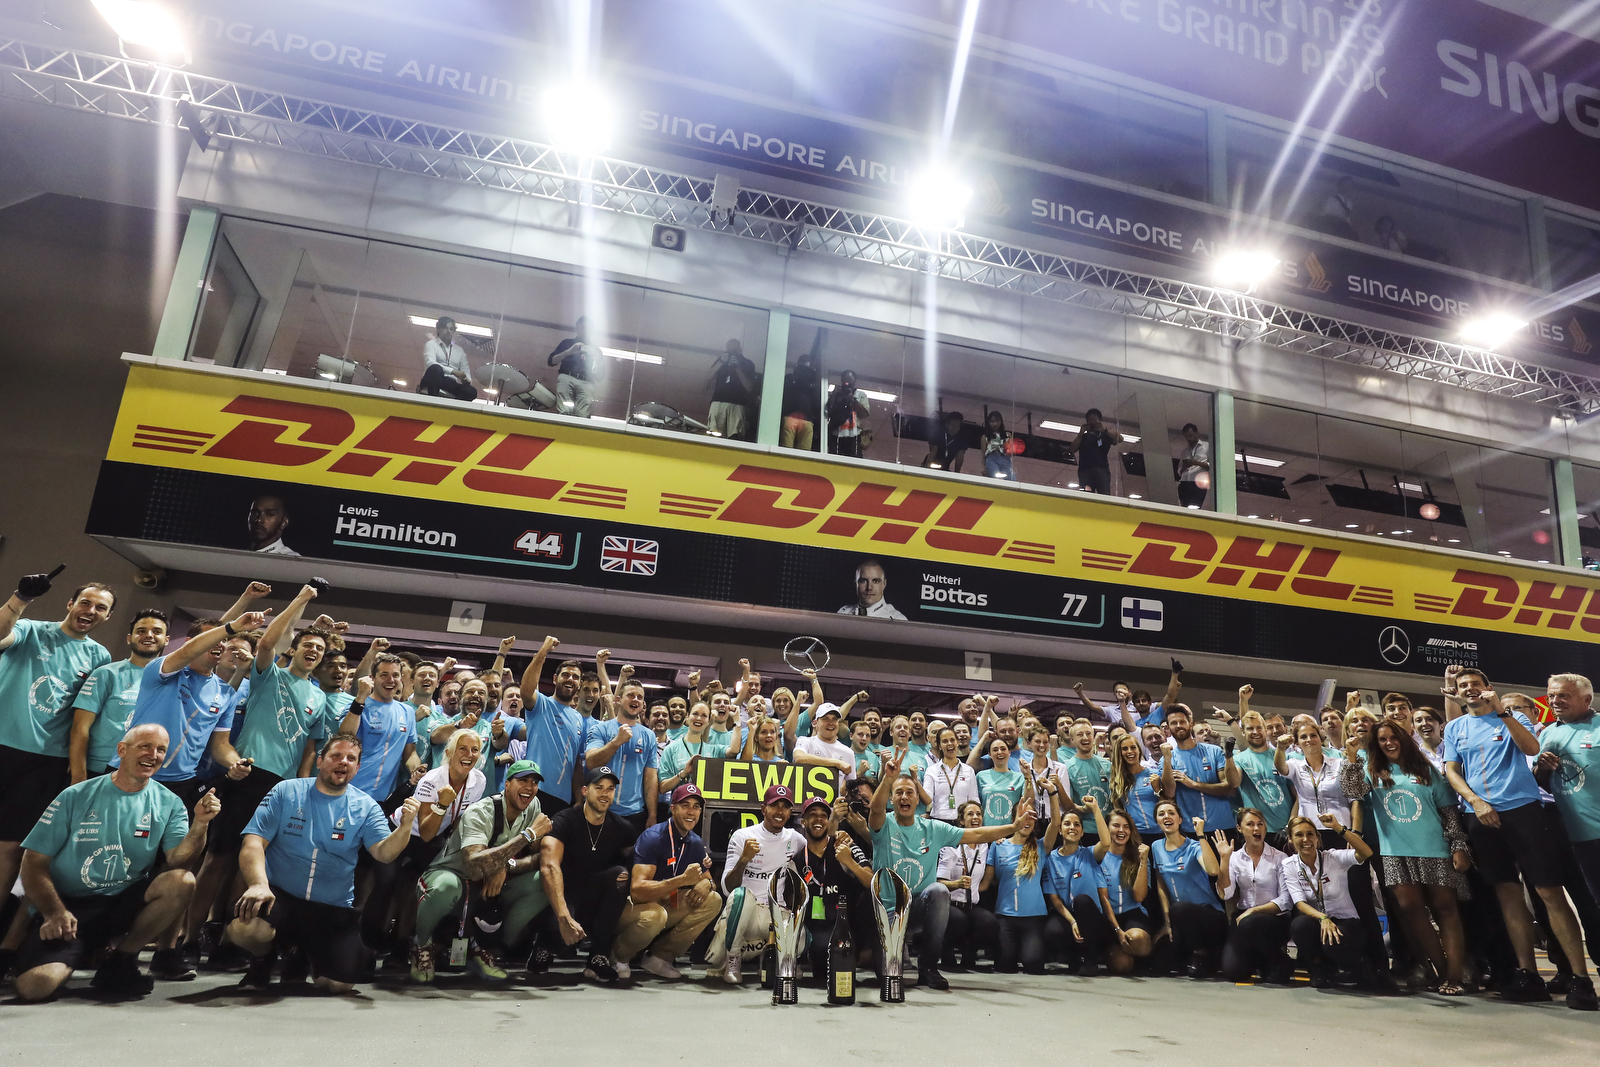 The Mercedes team poses for photos after Lewis Hamilton of Britain, center, wins the Singapore Formula One Grand Prix at the Marina Bay City Circuit in Singapore, Sunday, Sept. 16, 2018. (AP Photo/Yong Teck Lim)